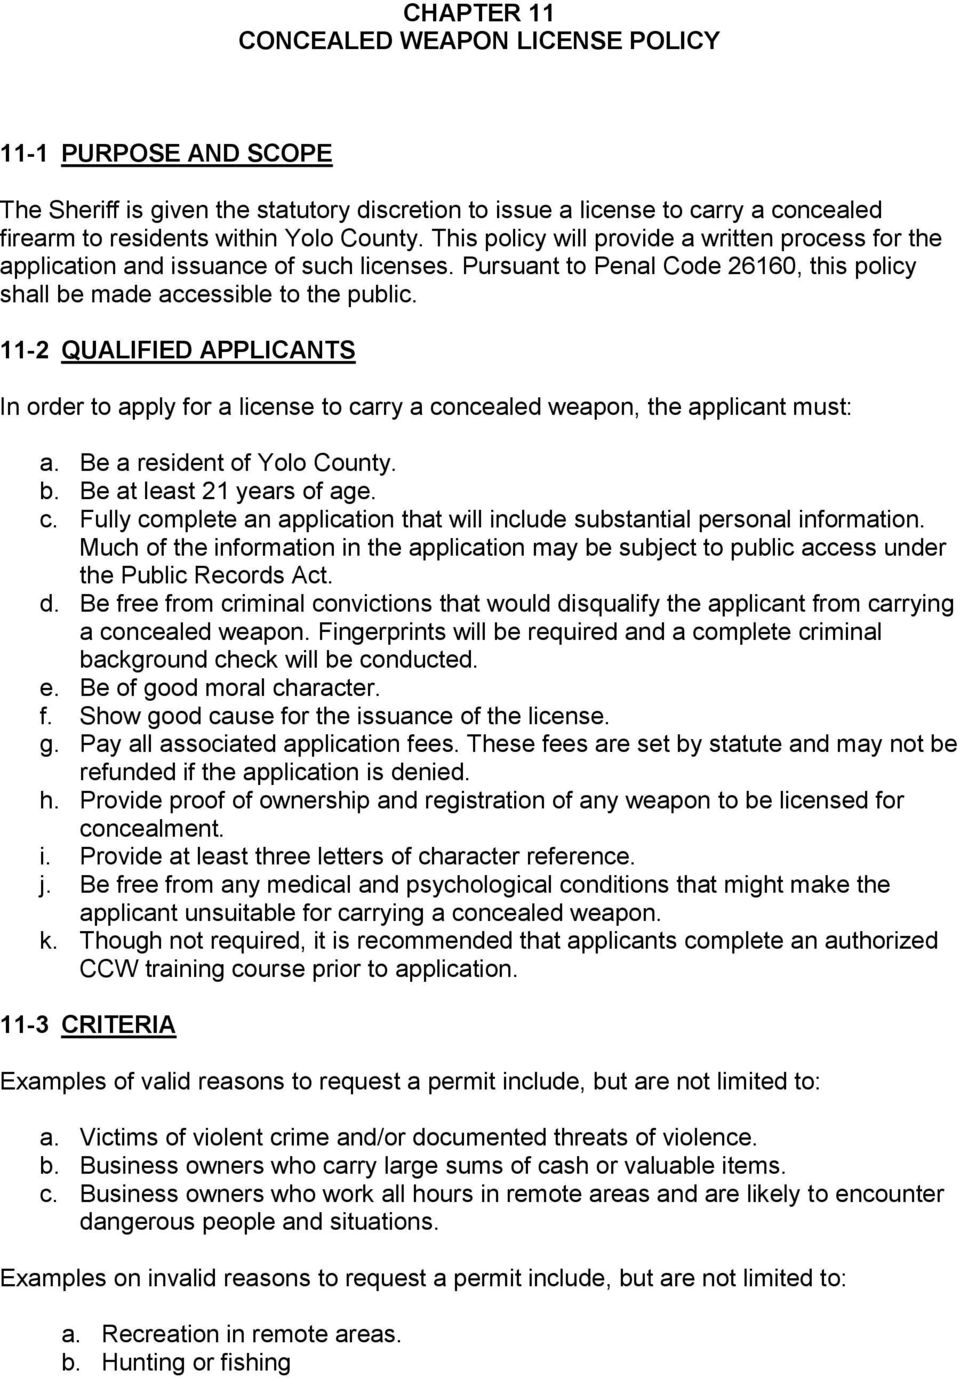 11-2 QUALIFIED APPLICANTS In order to apply for a license to carry a concealed weapon, the applicant must: a. Be a resident of Yolo County. b. Be at least 21 years of age. c. Fully complete an application that will include substantial personal information.